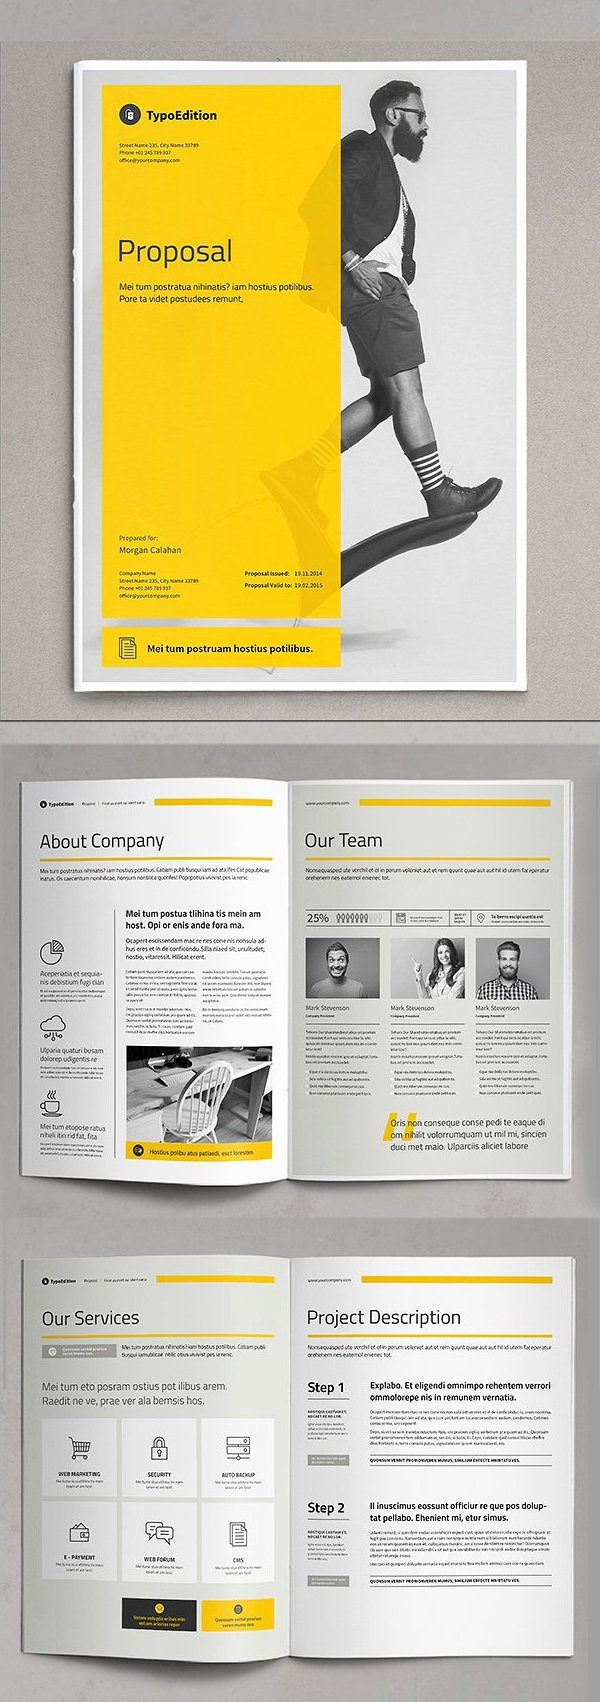 Free Web Design Proposal Template Best Of Business Proposal Templates Design